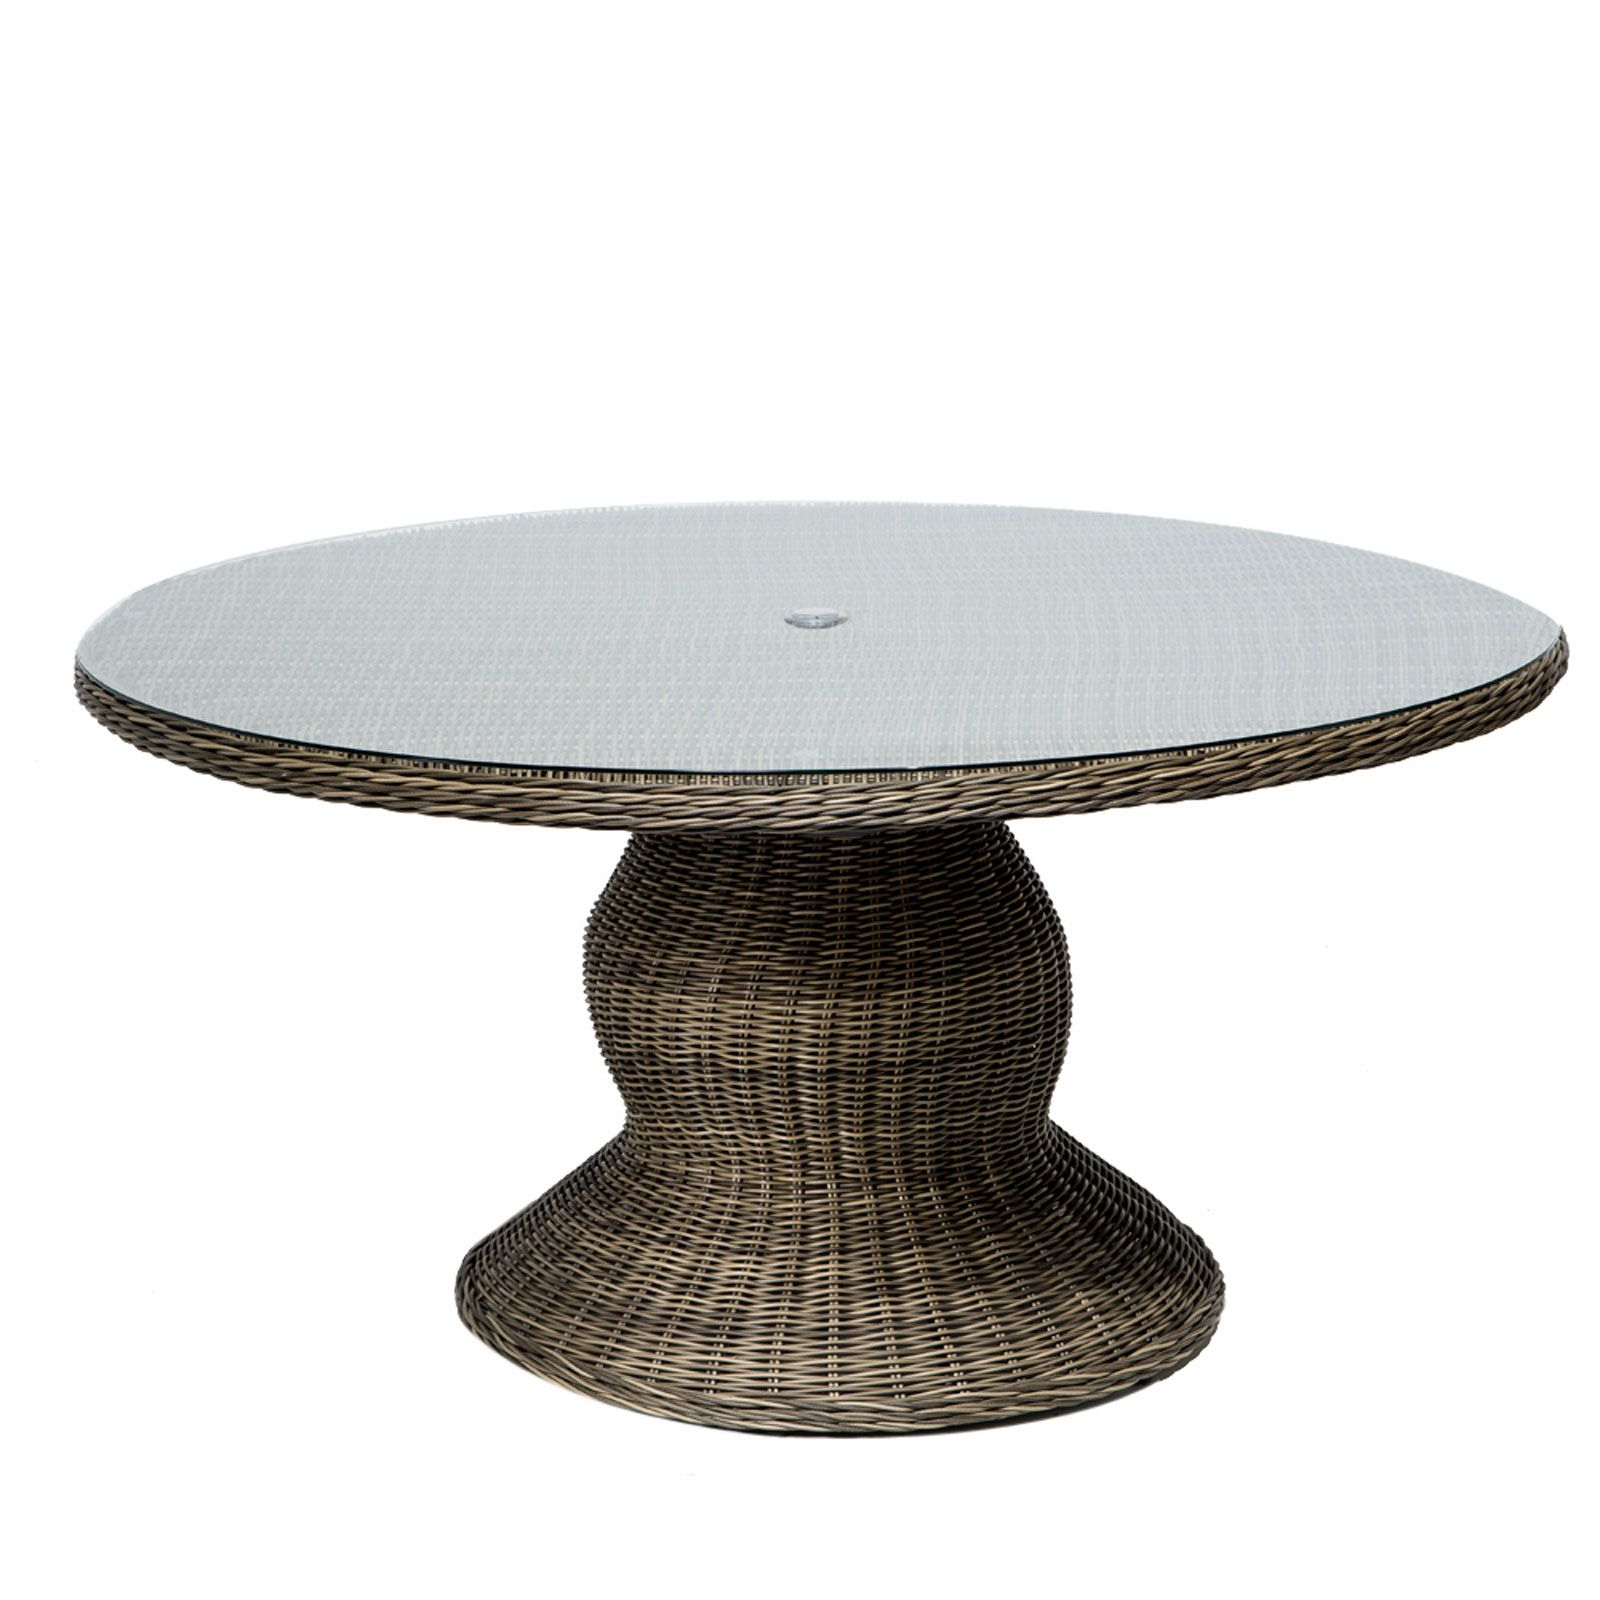 60 Inch Round Patio Table | Furniture Ideas | Pinterest | Round ...